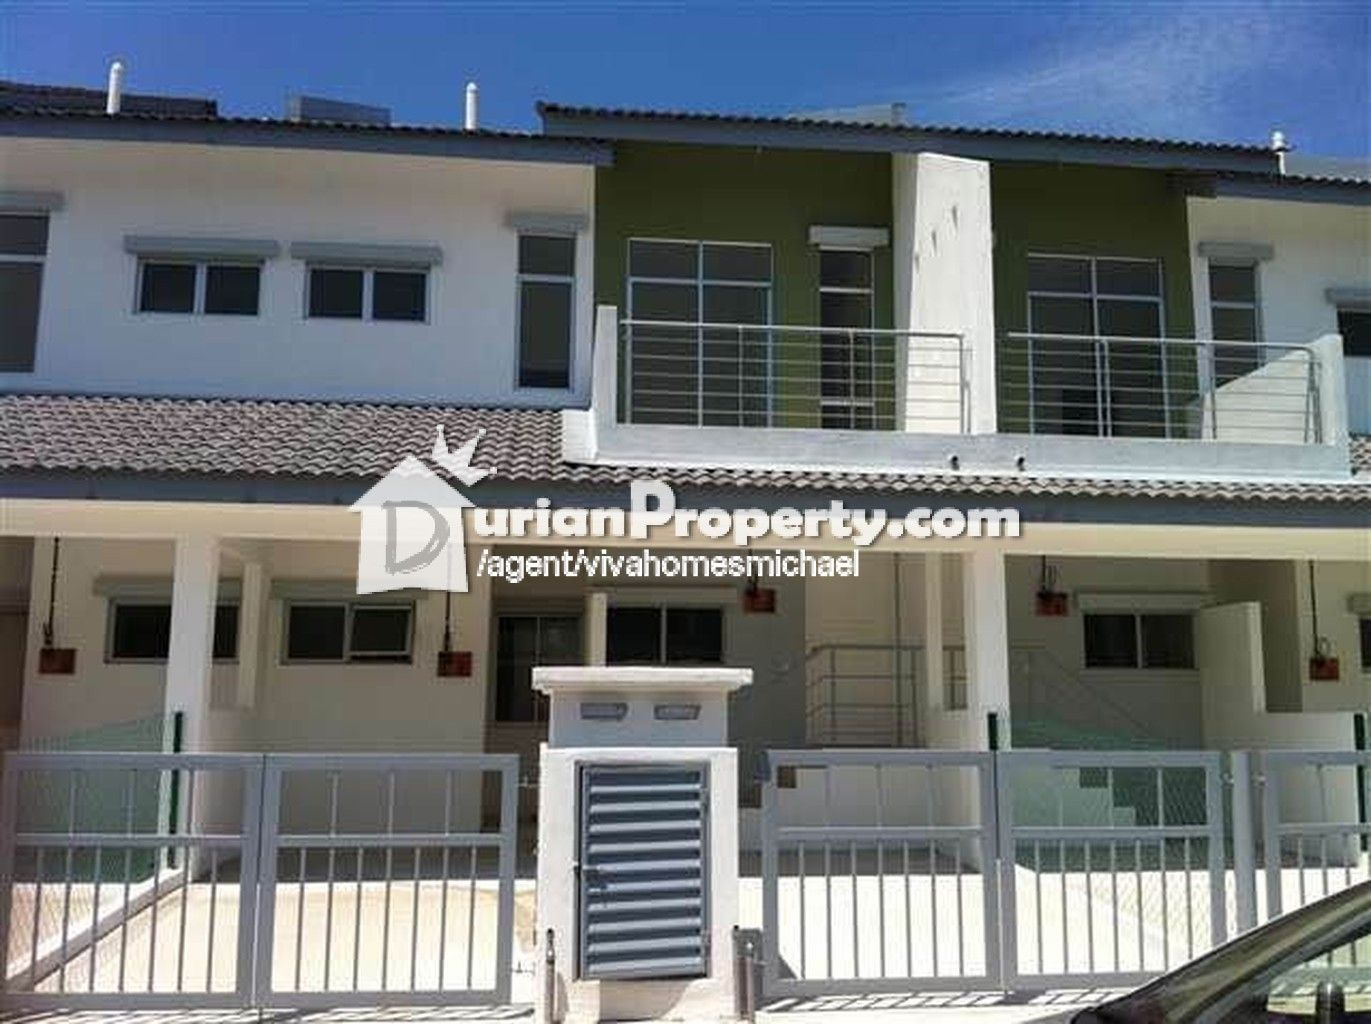 Property for Sale in Malaysia Property for sale